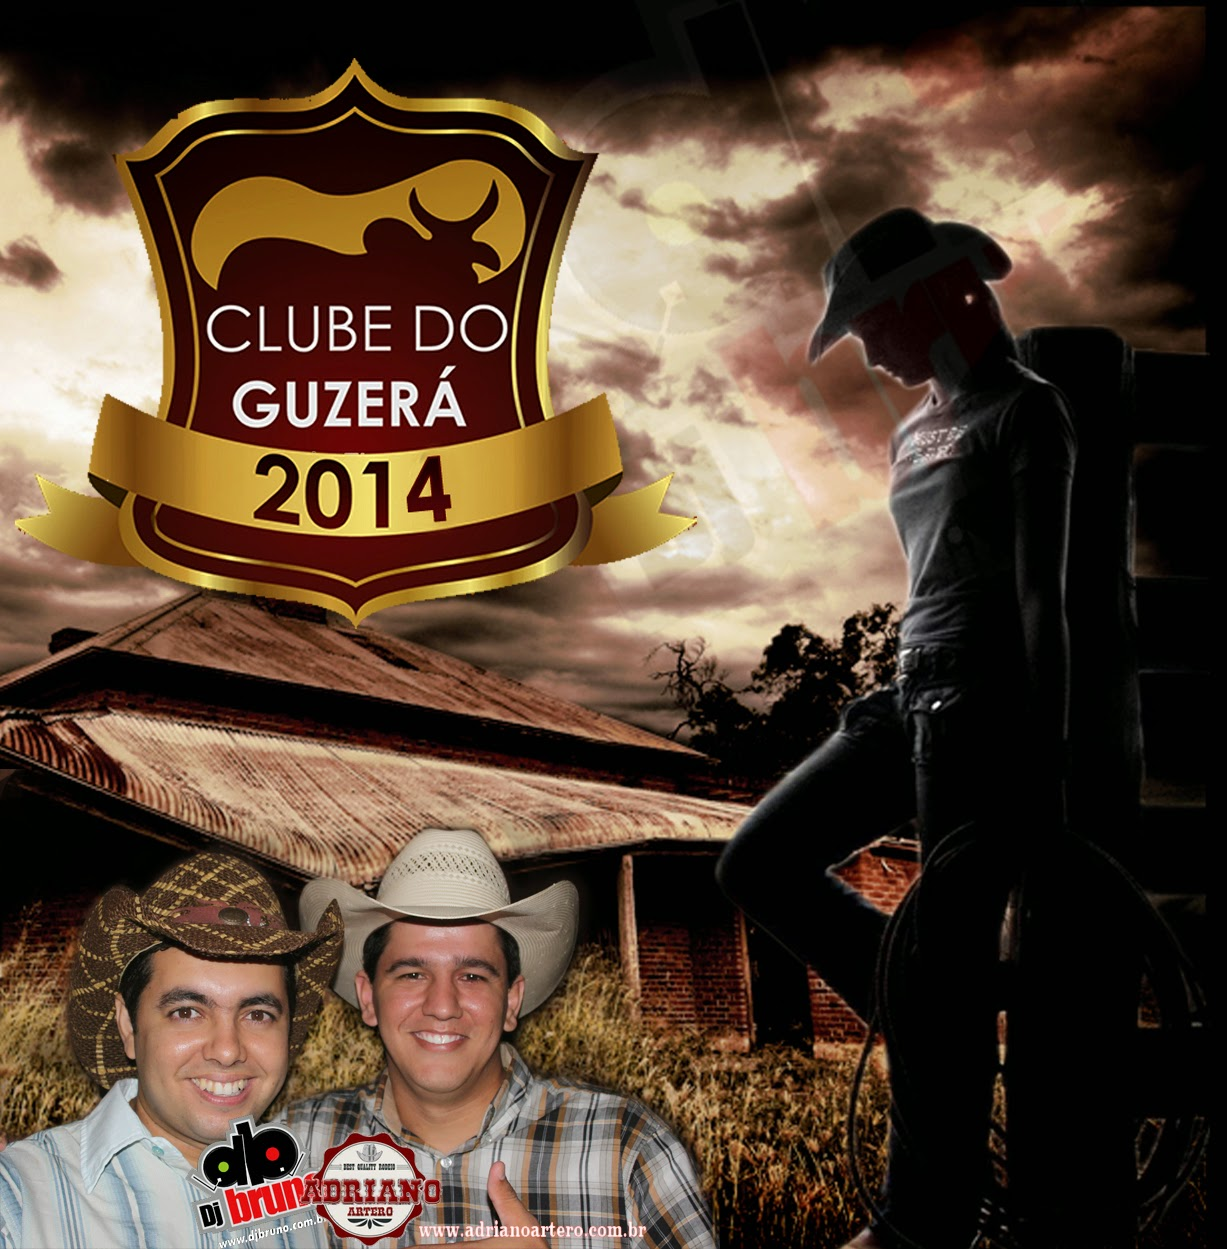 Dj Bruno Granado - Comitiva Clube do Guzer� Vol.7